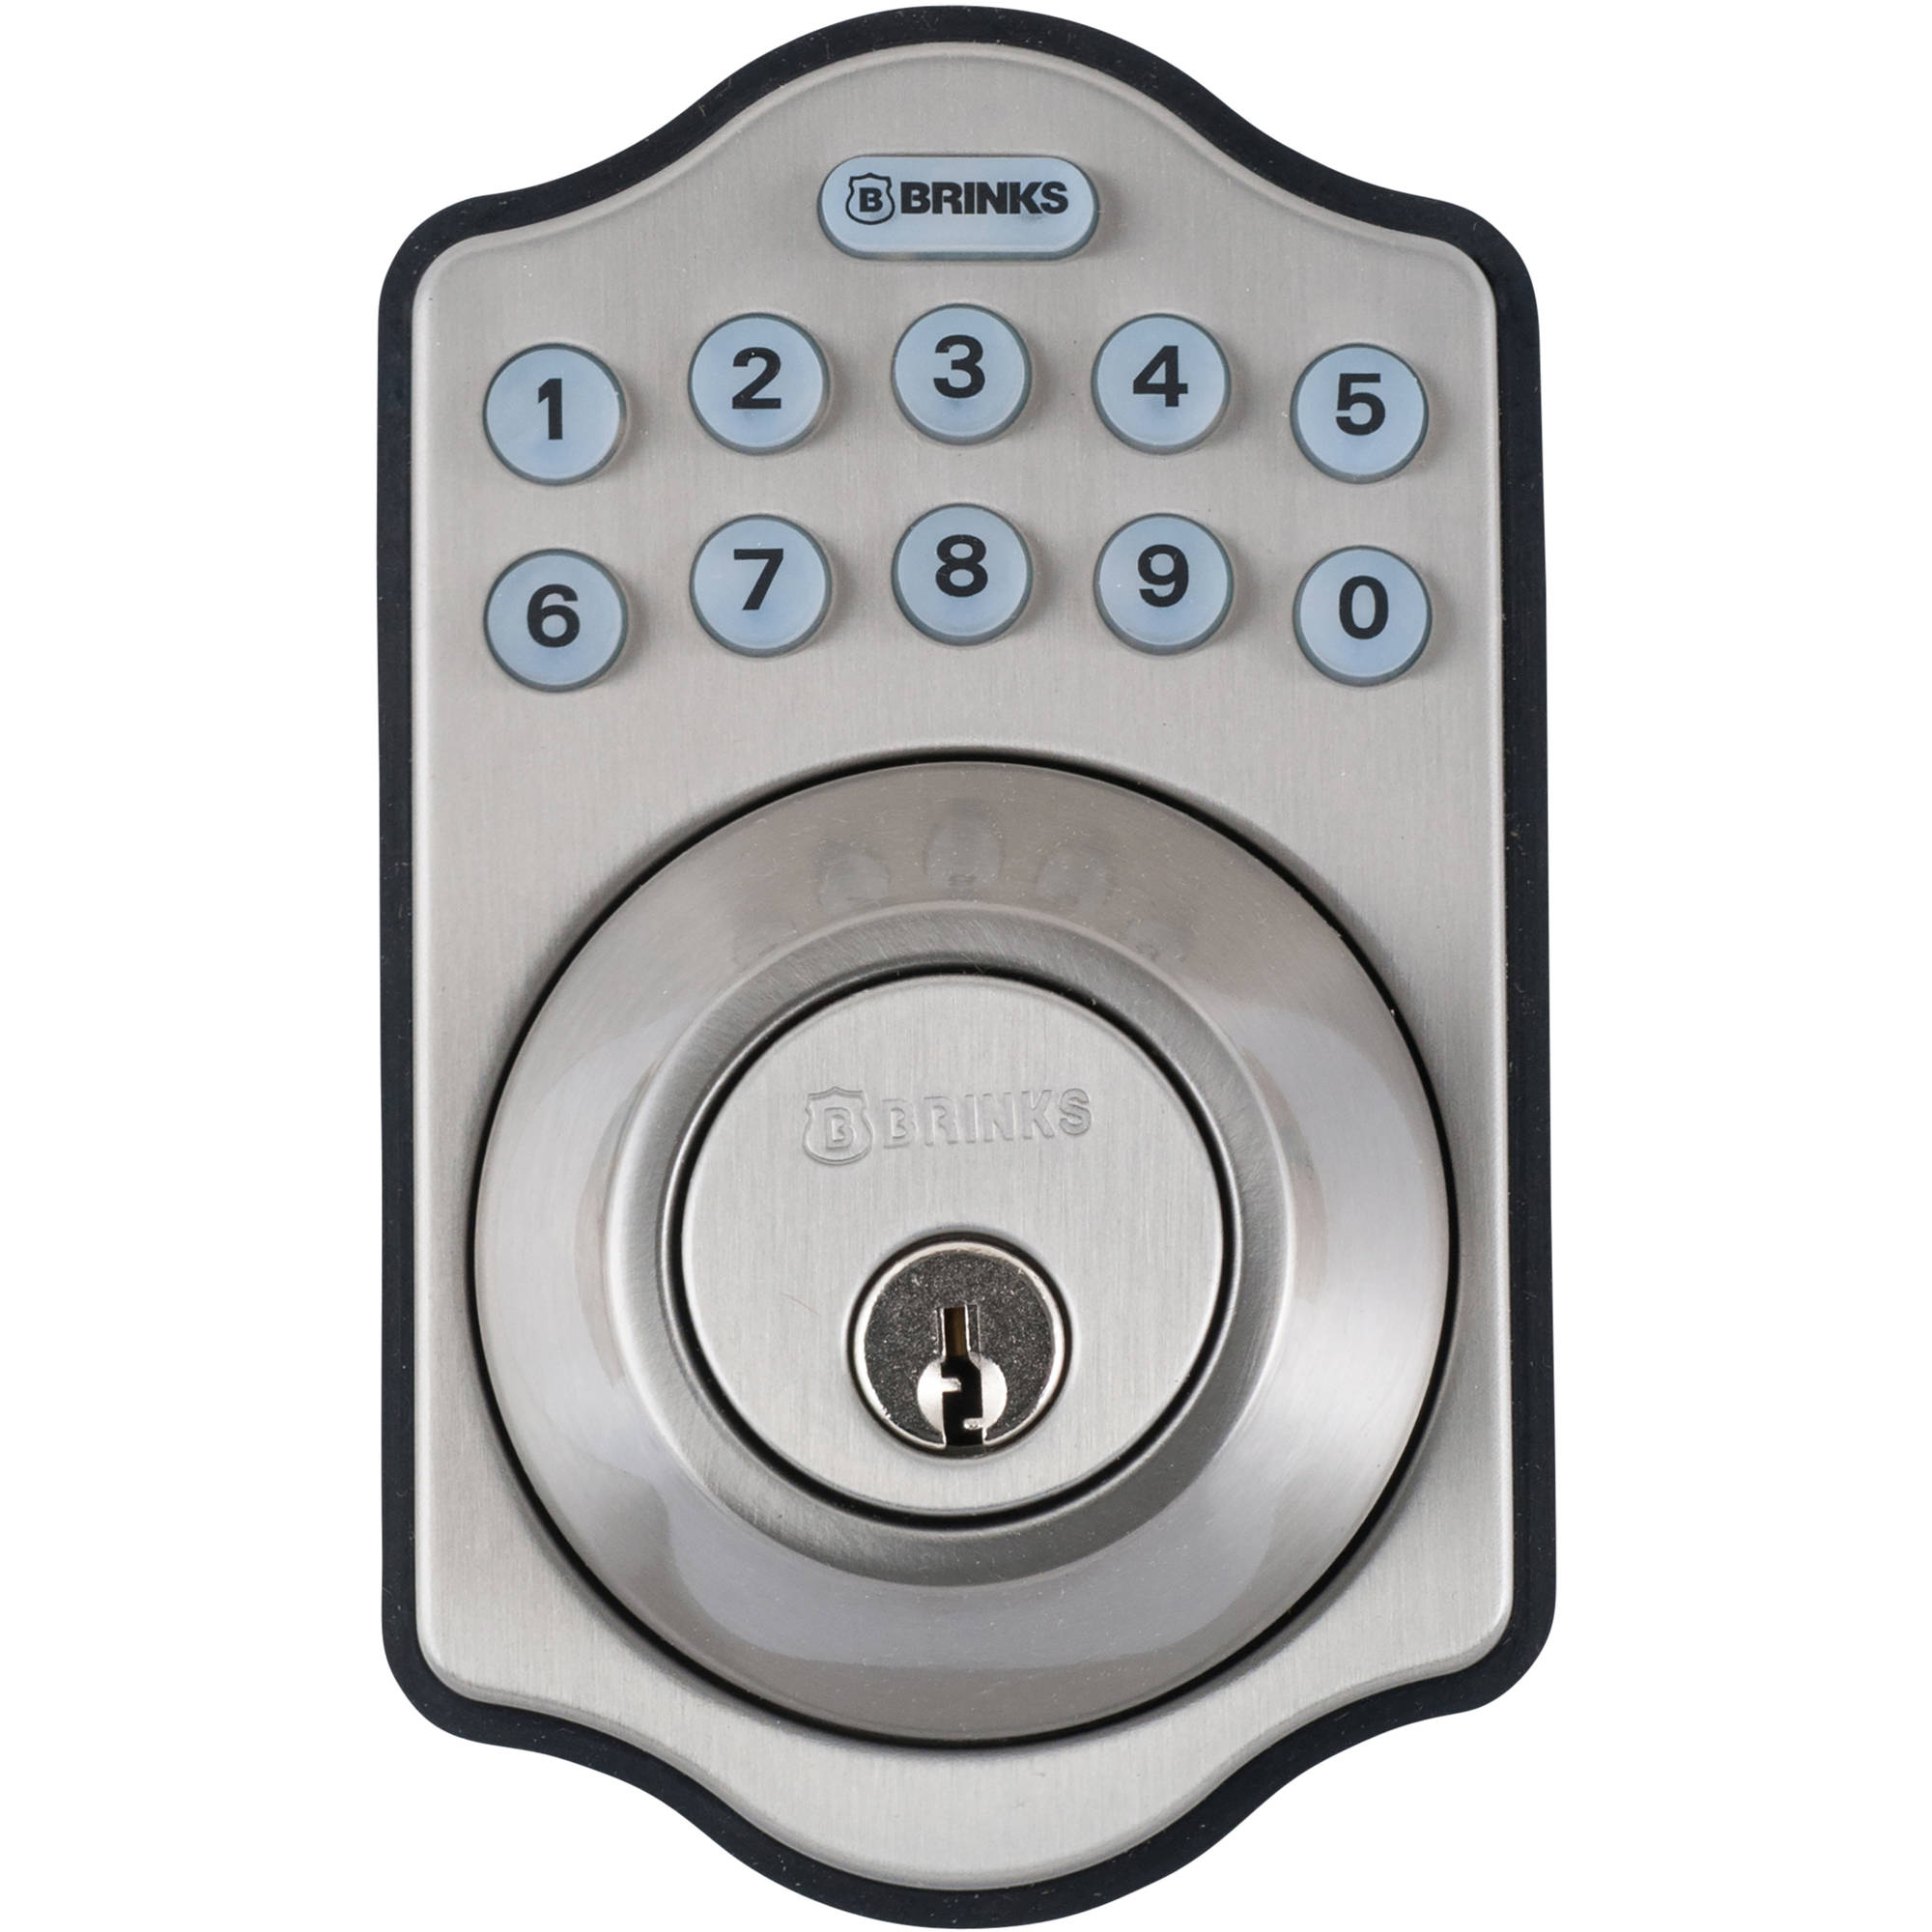 Brinks Digital Deadbolt, Satin Nickel